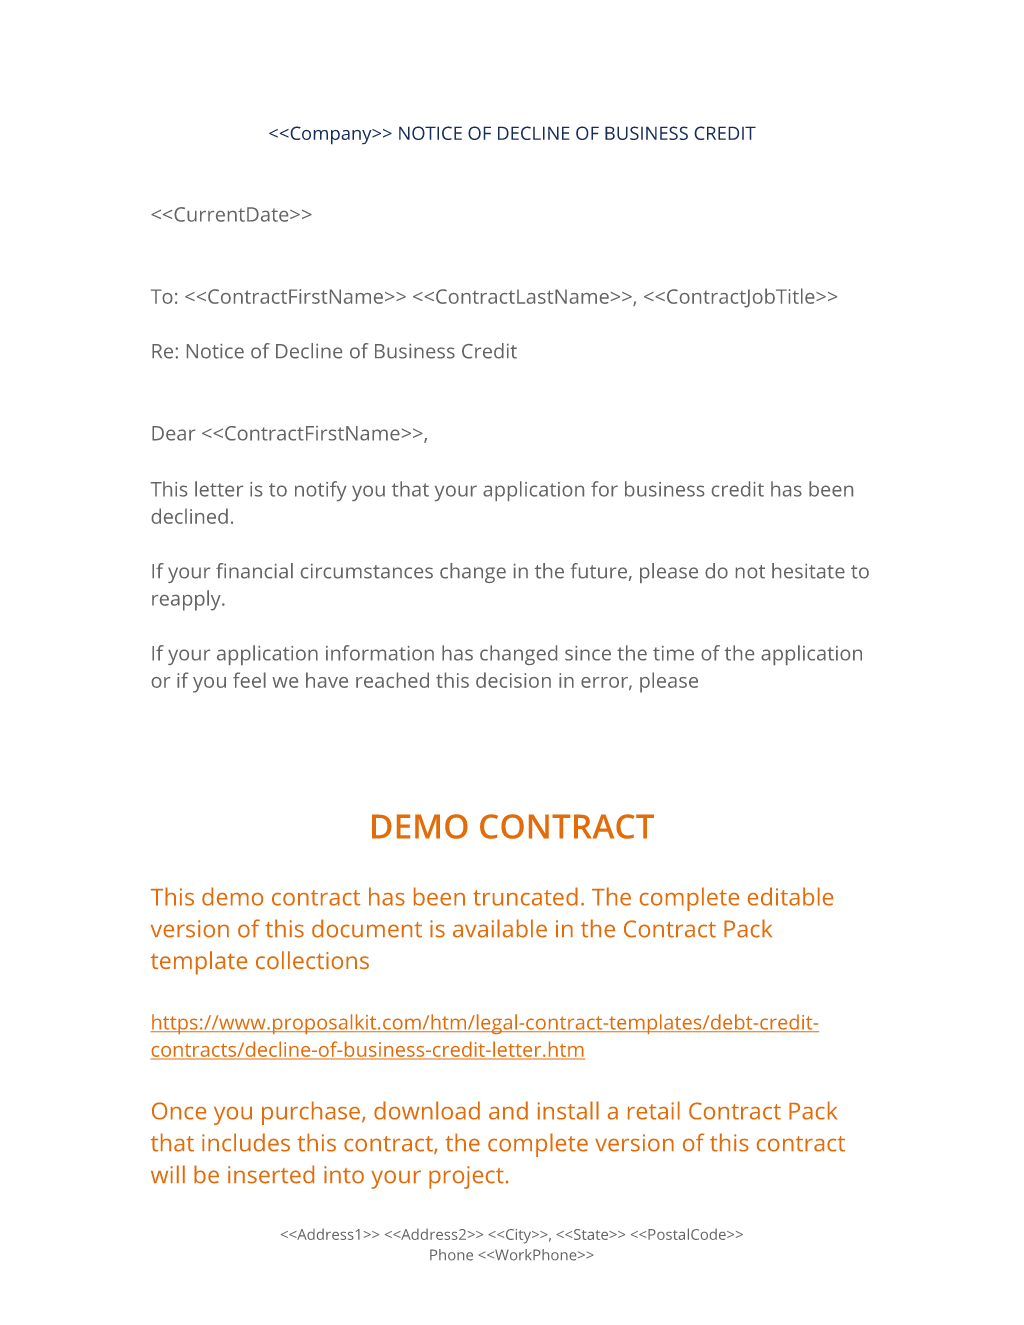 Agreement Letter For Loan Brilliant Decline Of Business Credit Letter  The Decline Of Business Credit .